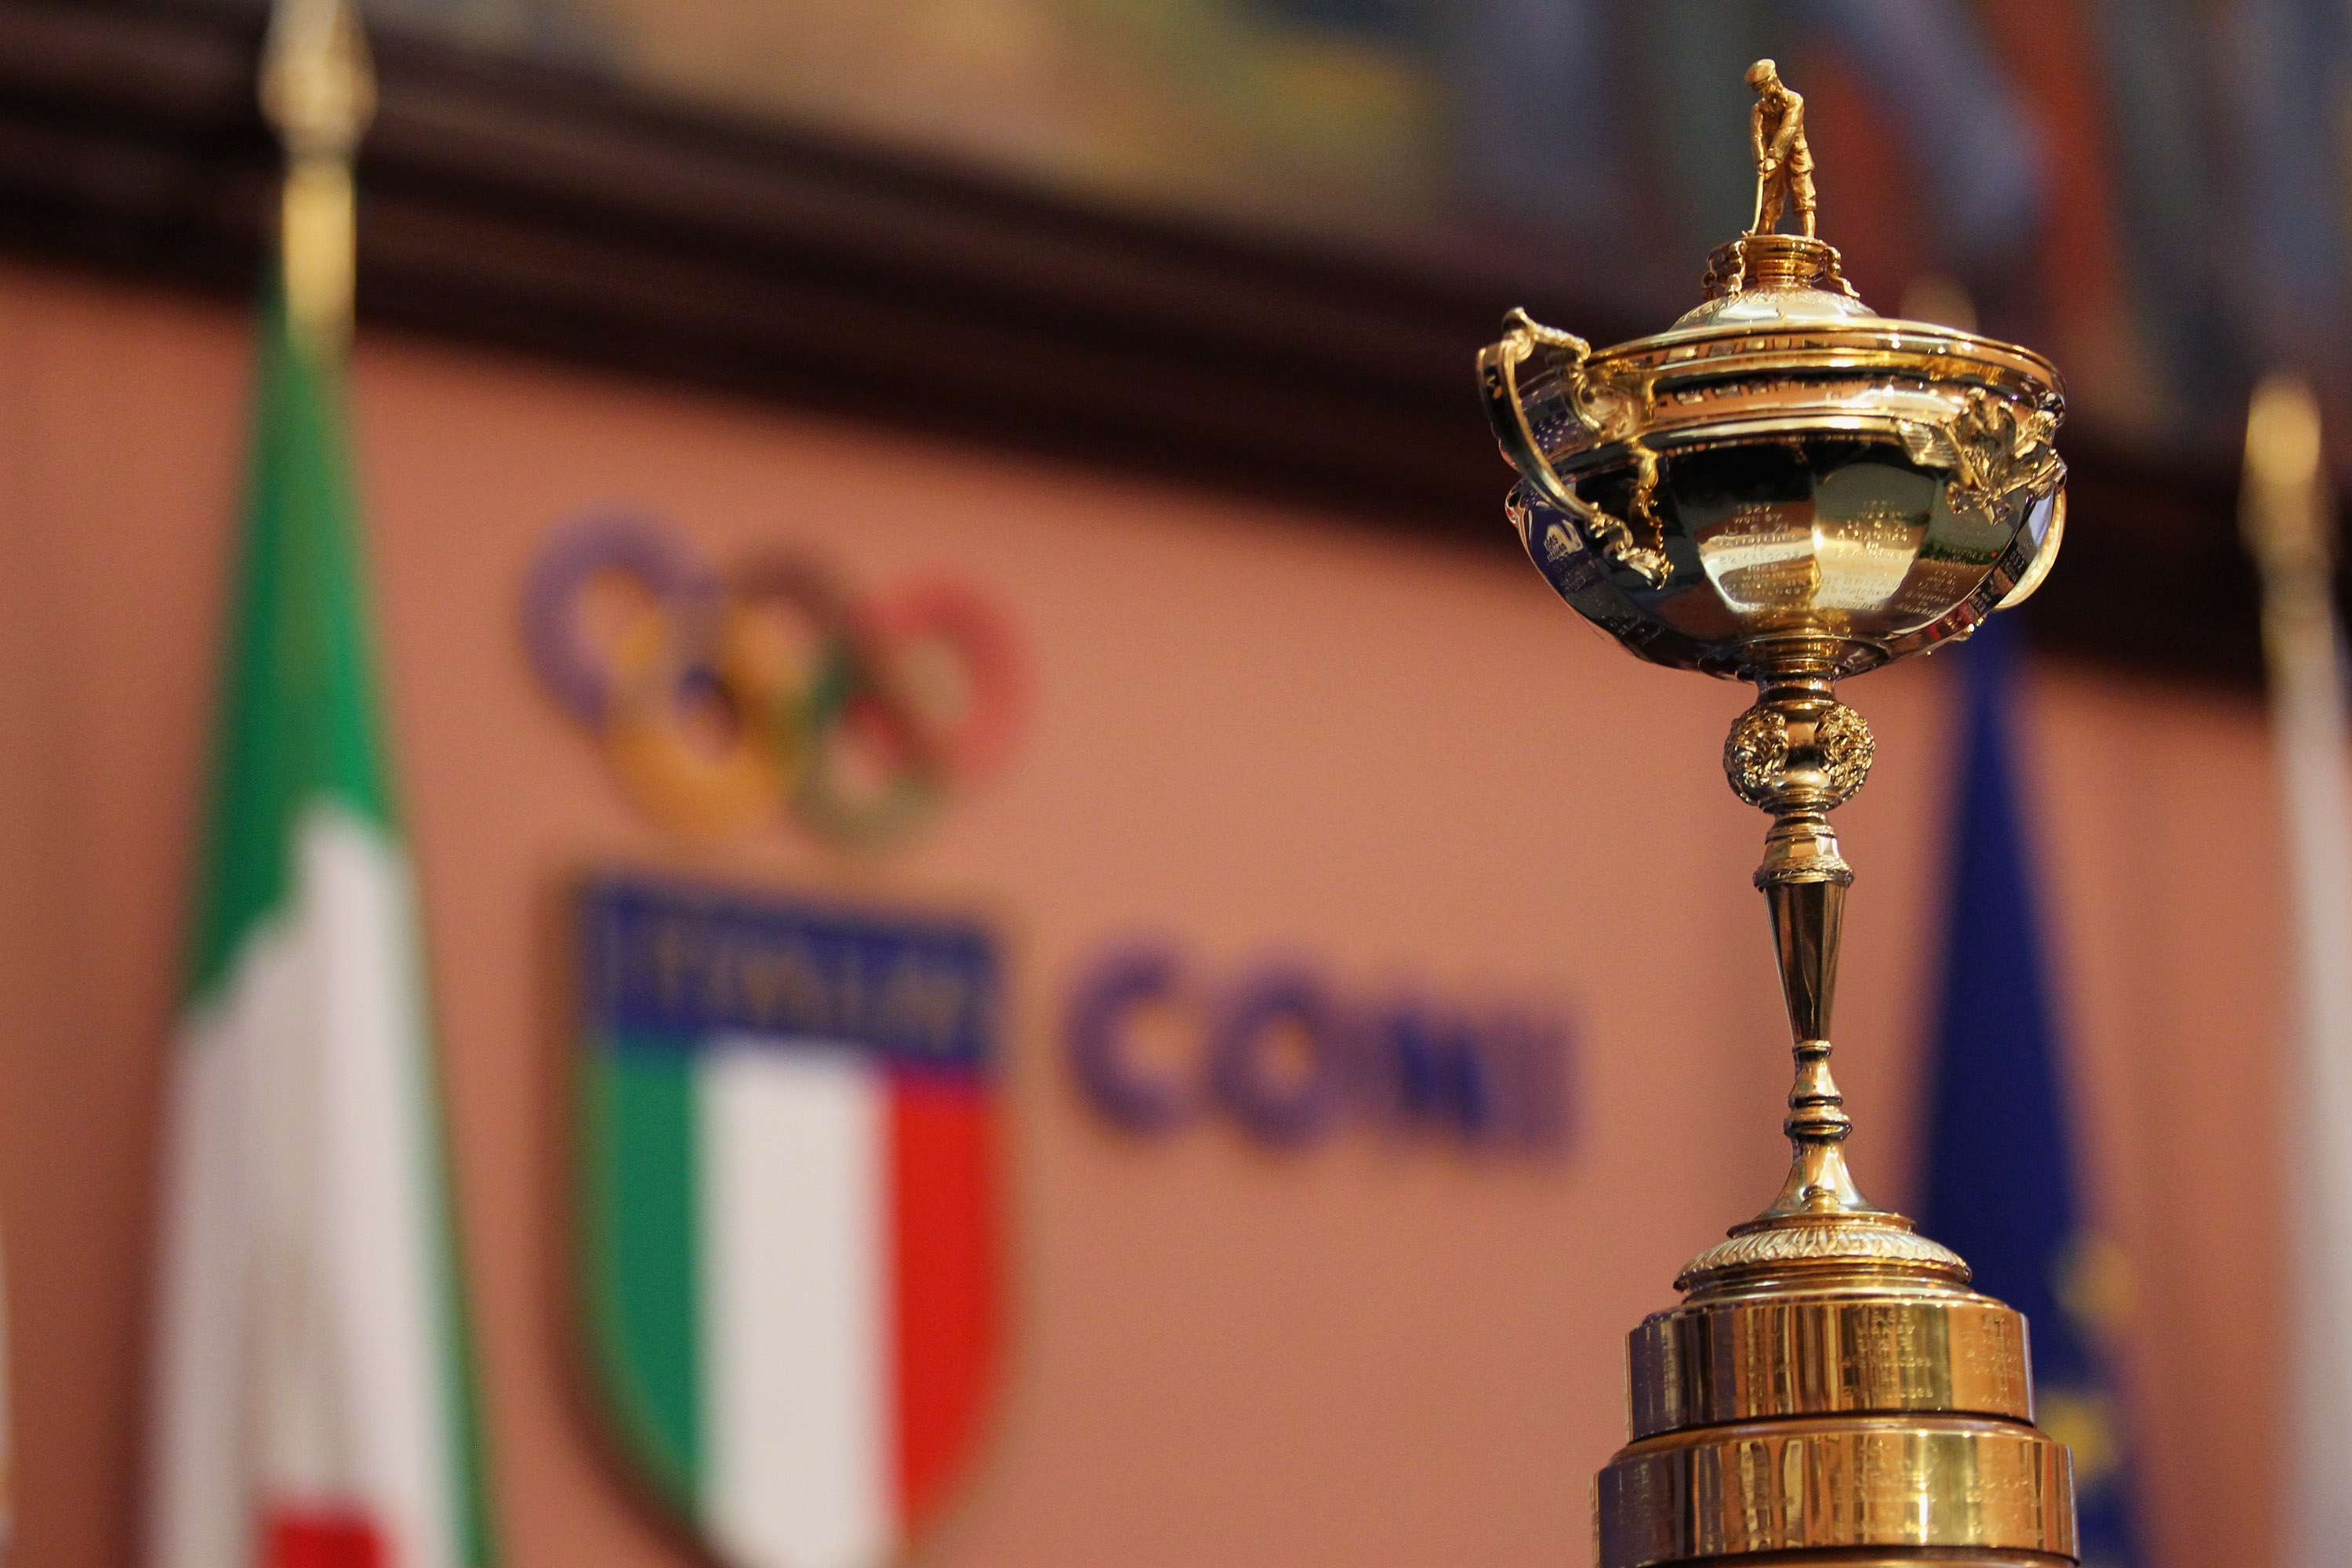 The 2022 Ryder Cup was awarded to the Marco Simone Golf and Country Club outside Rome.